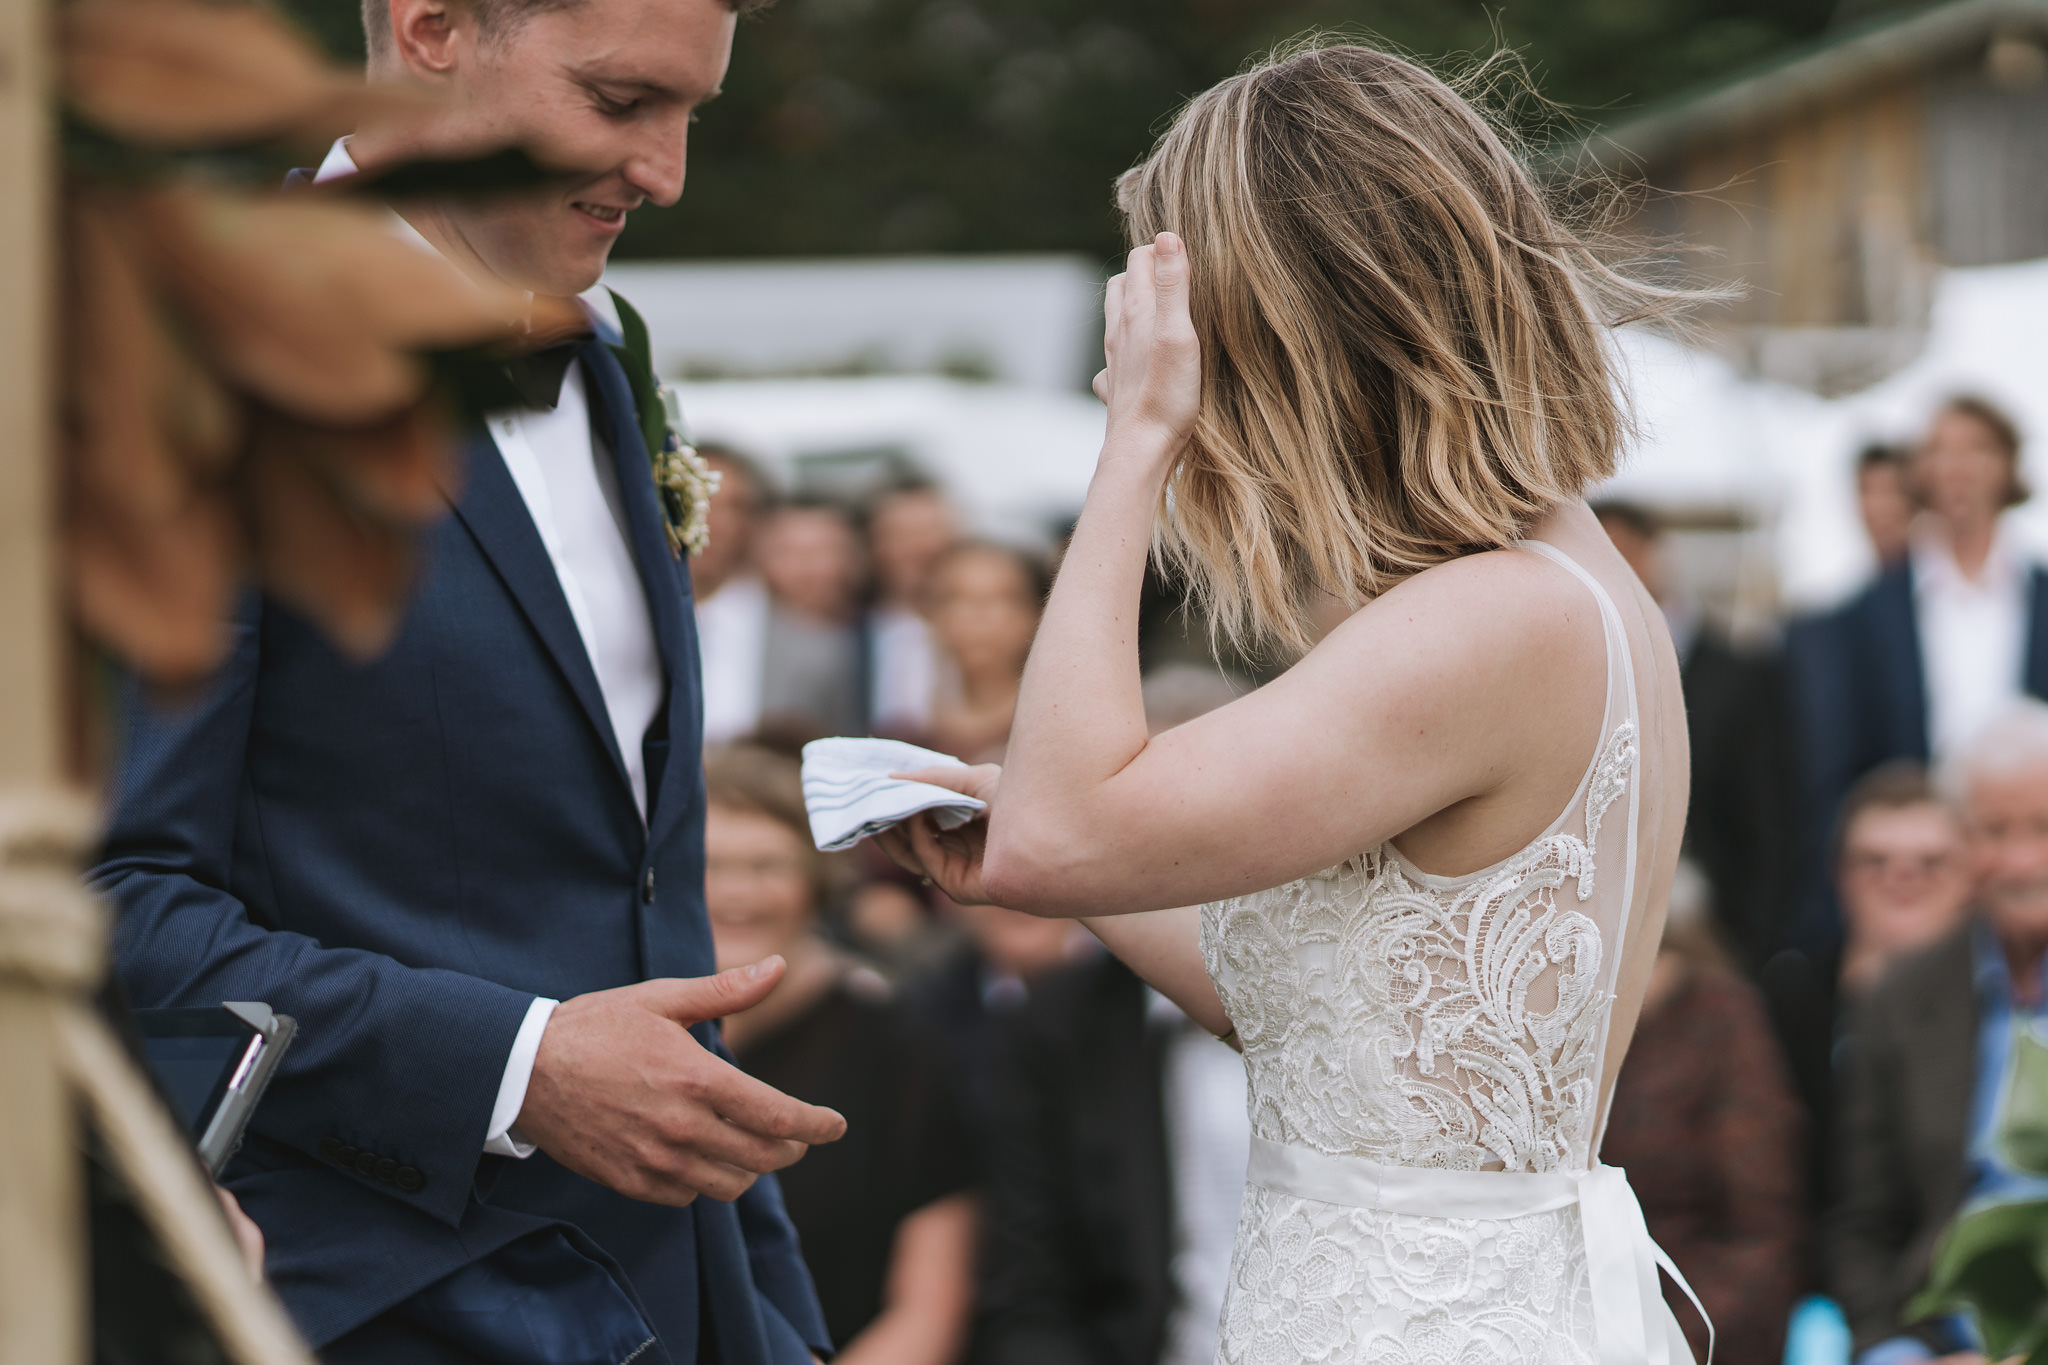 newfound-s-a-tauranga-new-zealand-wedding-photography-453